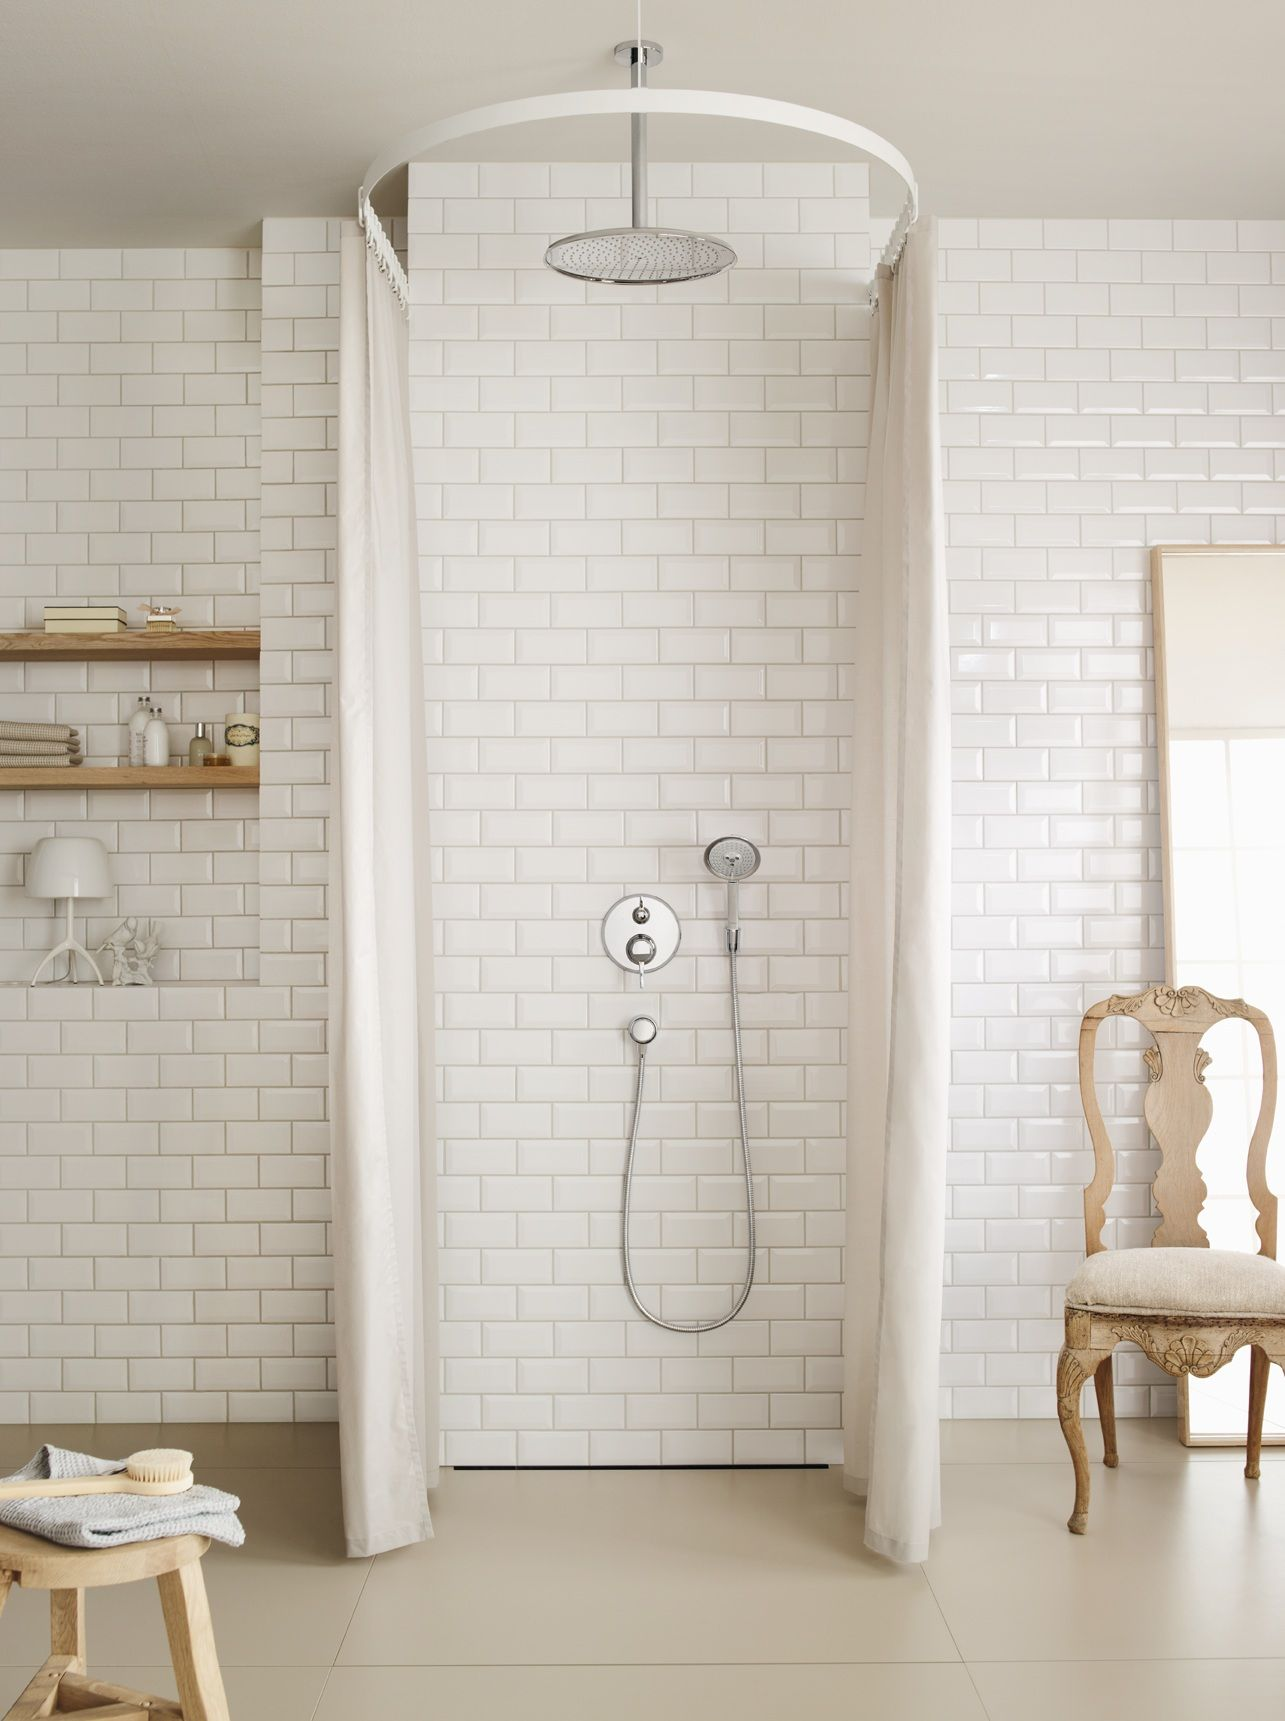 classic design hansgrohe raindance overhead shower - Bathroom Classic Design